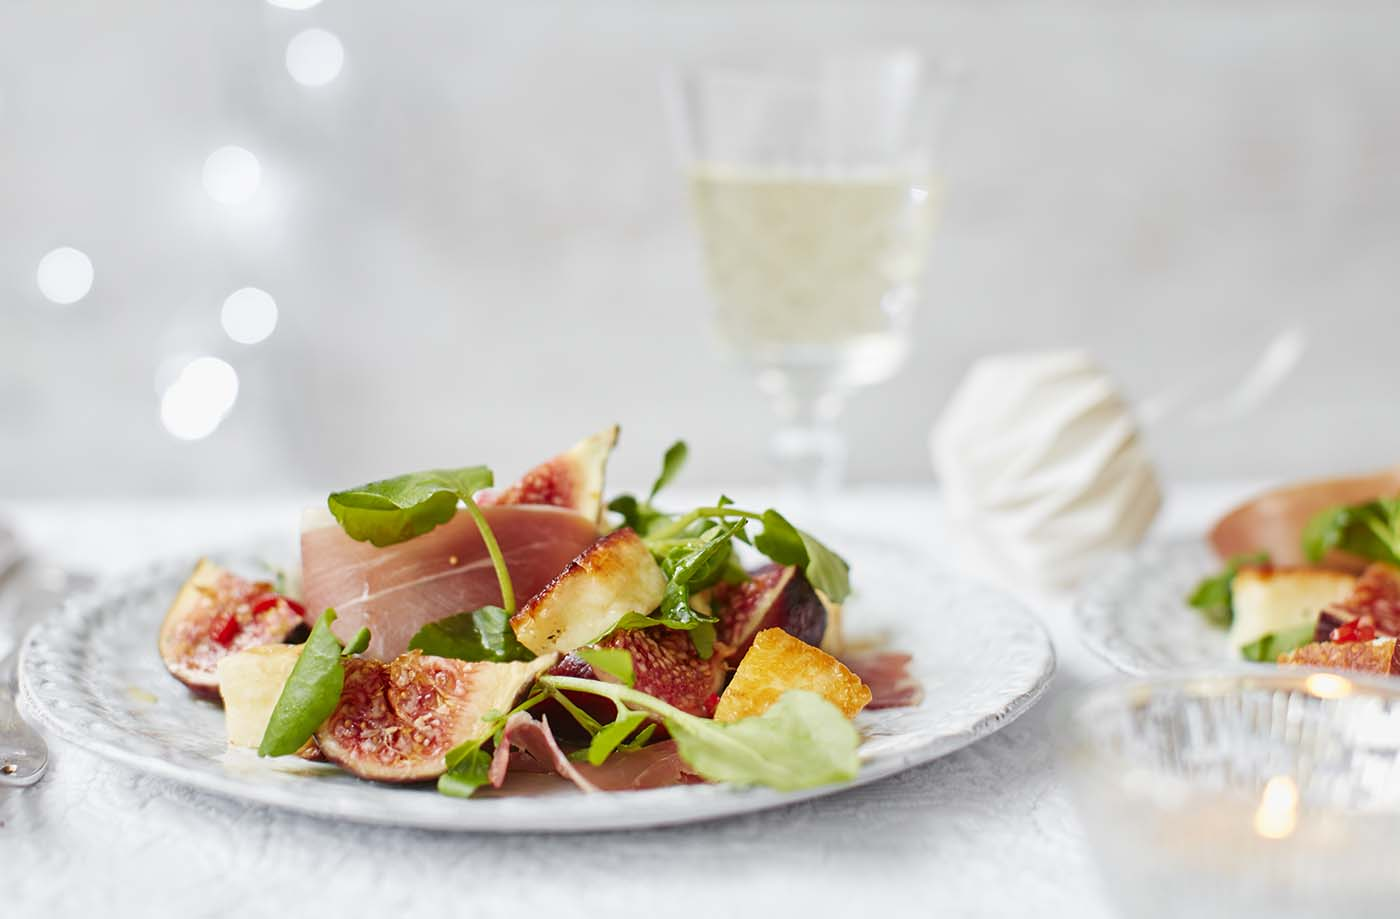 Cold Starter Ideas For A Dinner Party Part - 17: Serrano Ham, Halloumi And Fig Salad